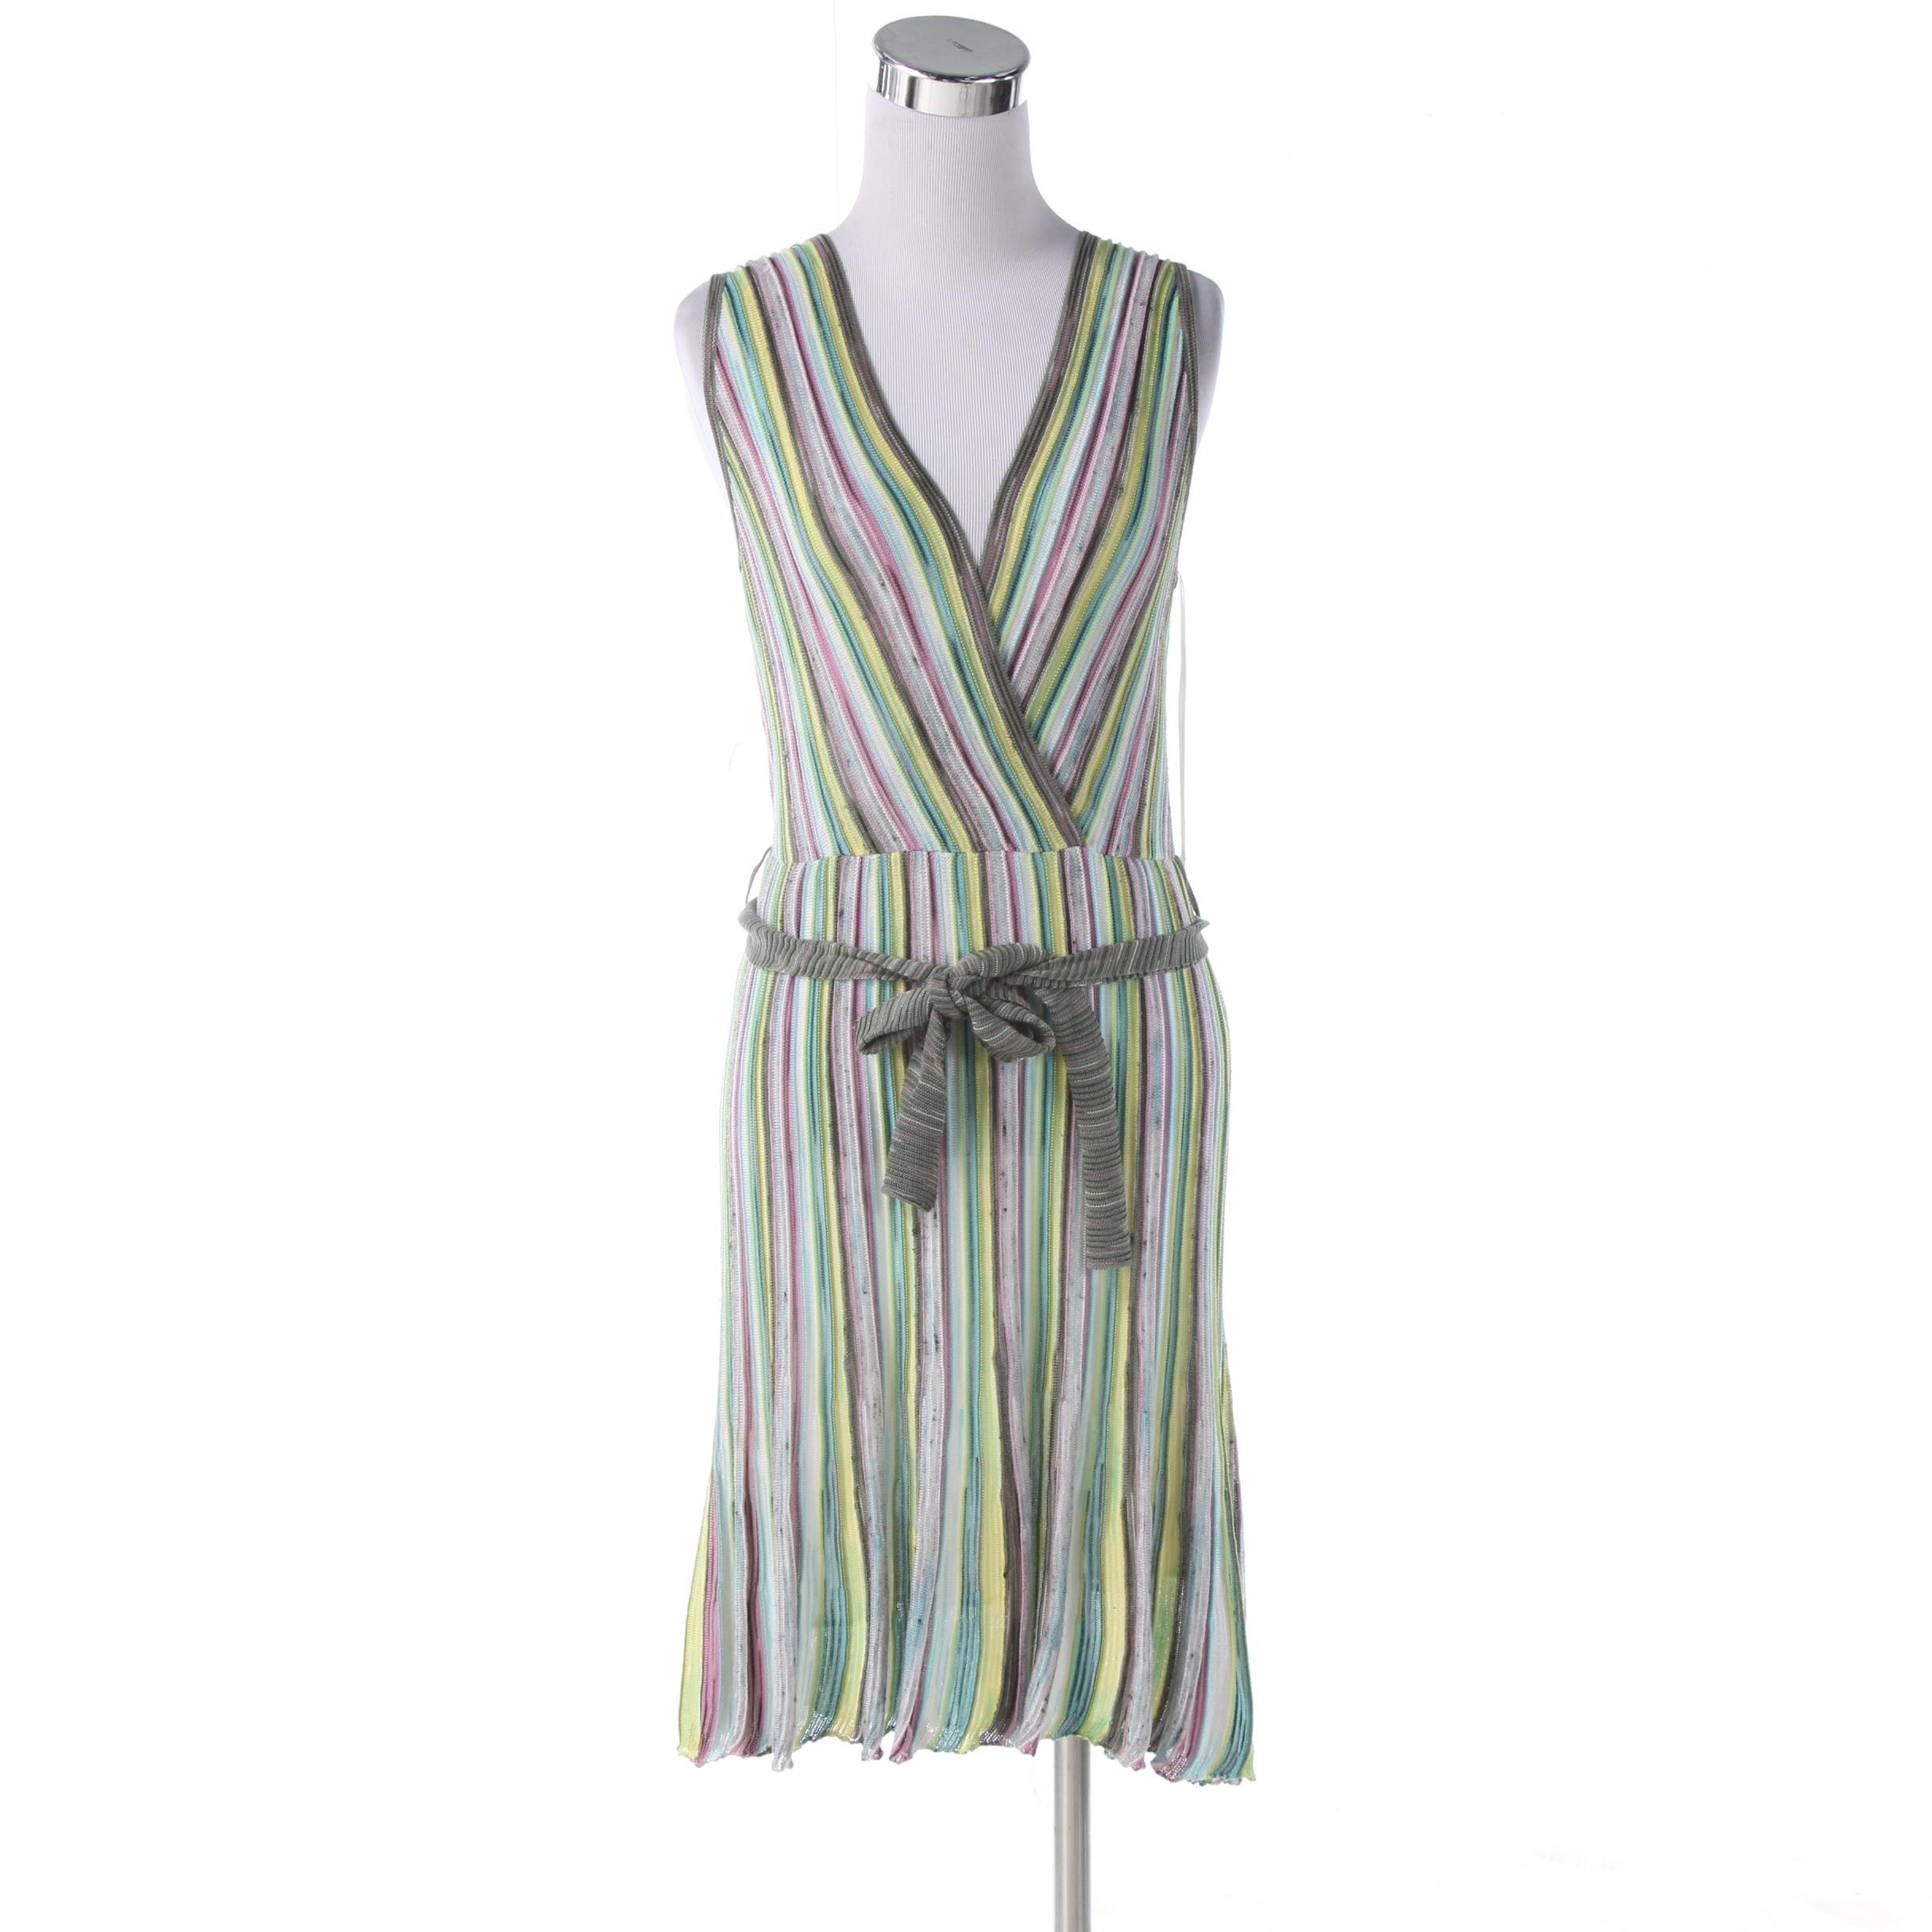 M Missoni Sleeveless Knit Dress in Striped Cotton Blend with Tie Sash